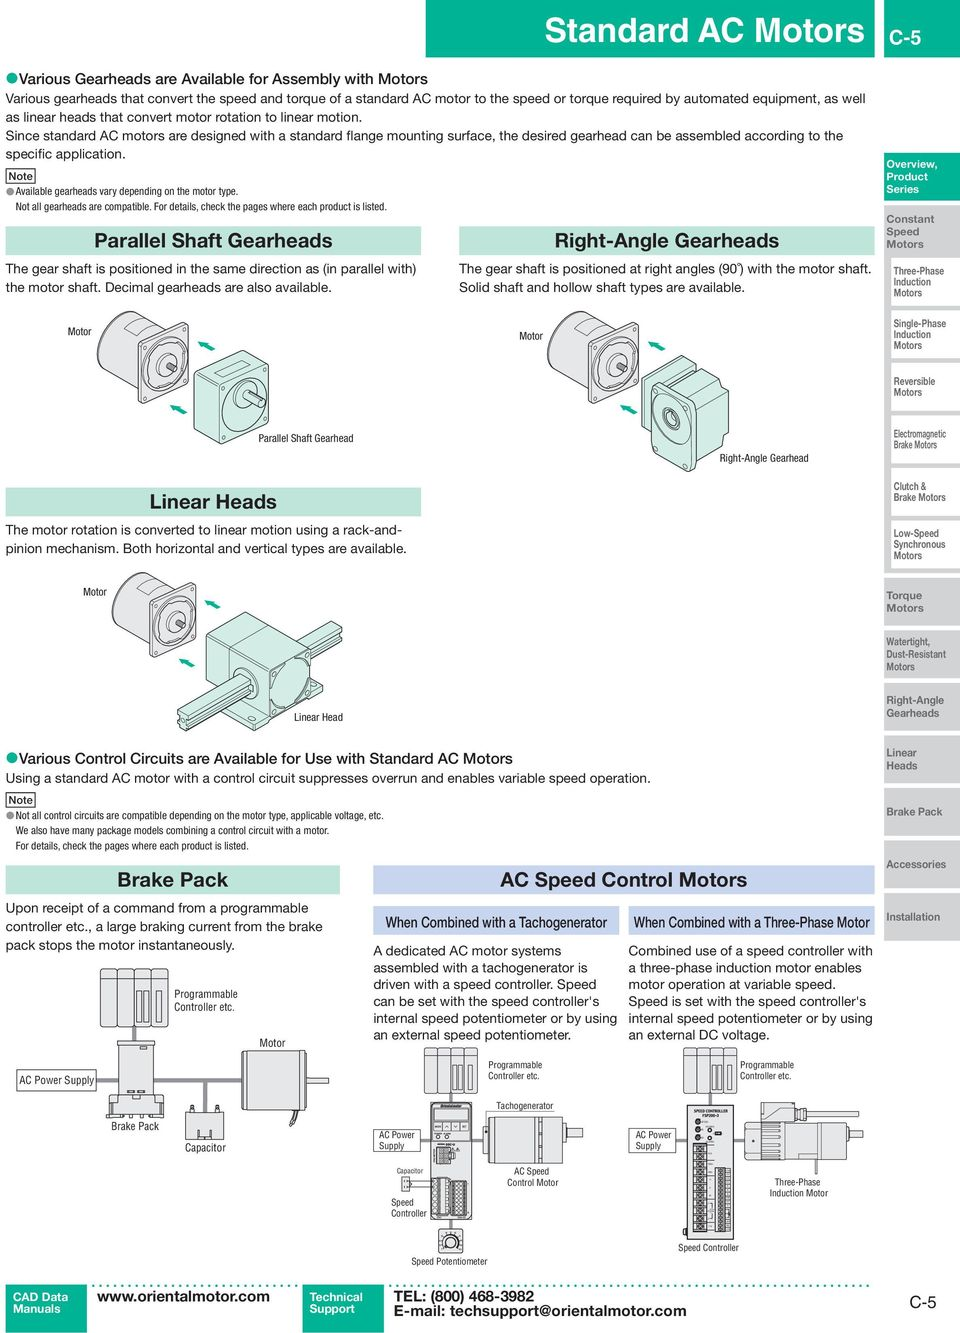 rotation to linear motion. Since standard AC motors are designed with a standard flange mounting surface, the desired gearhead can be assembled according to the specific application.